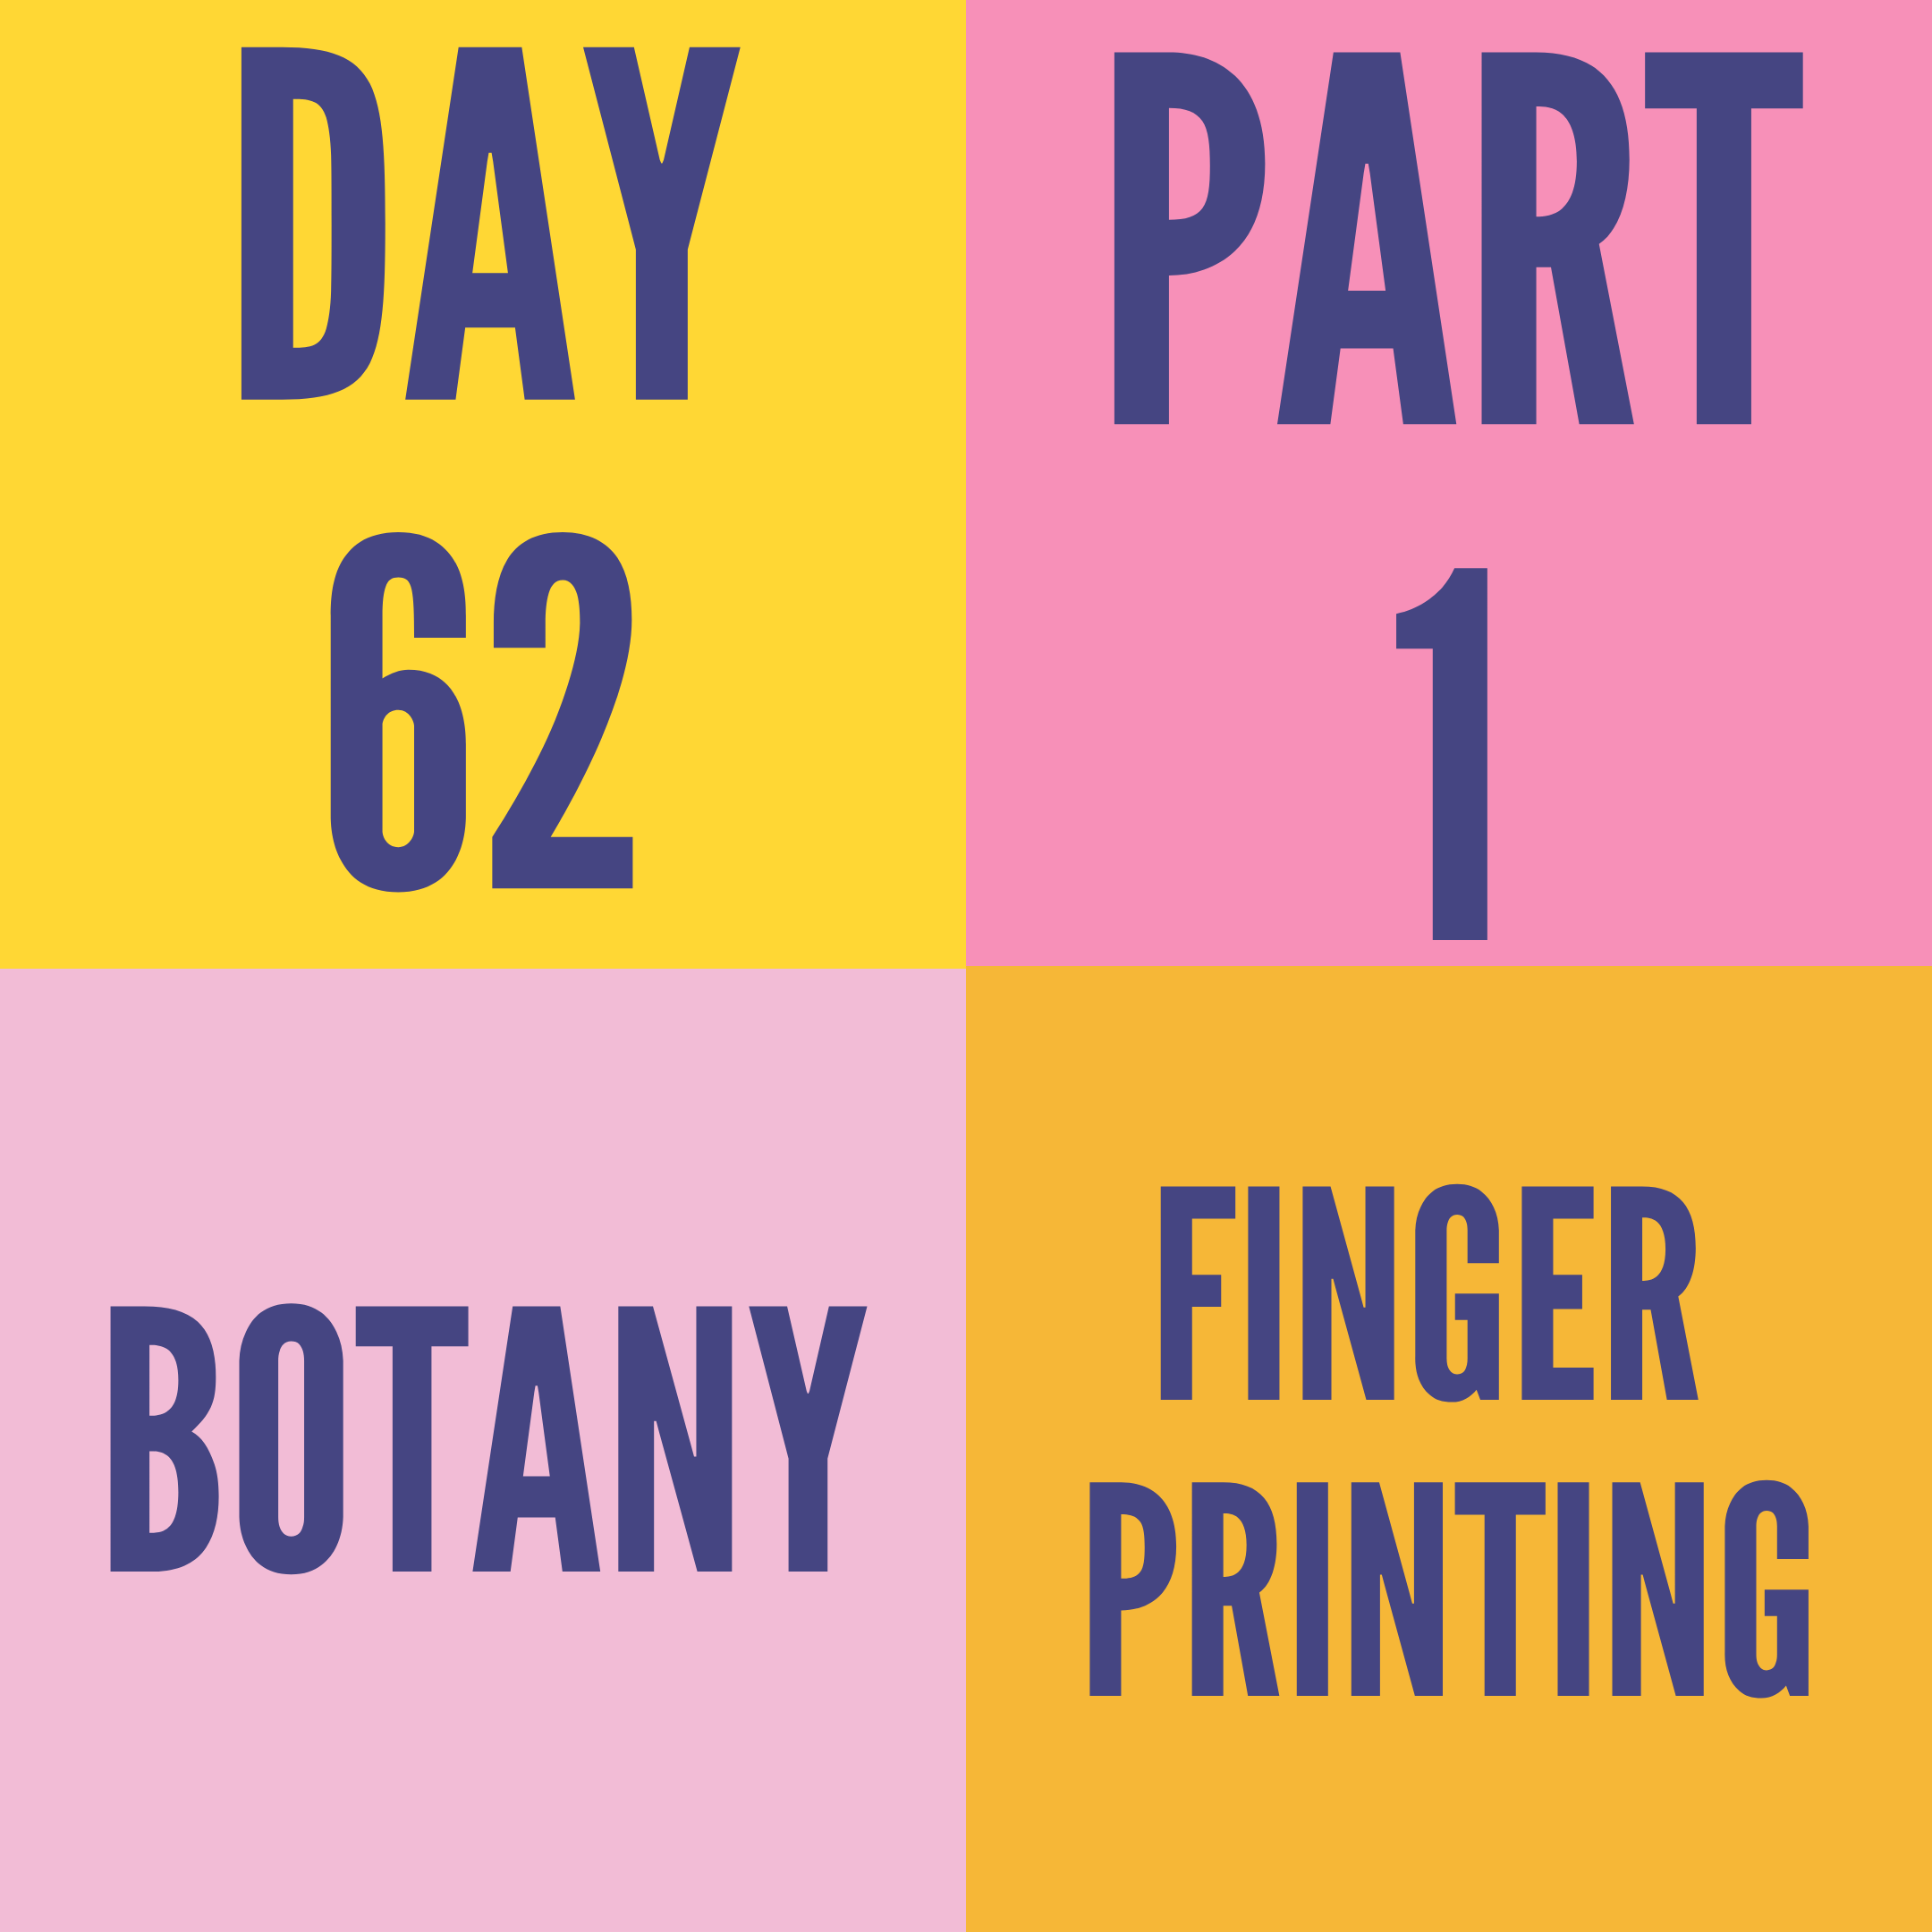 DAY-62 PART-1 FINGER PRINTING